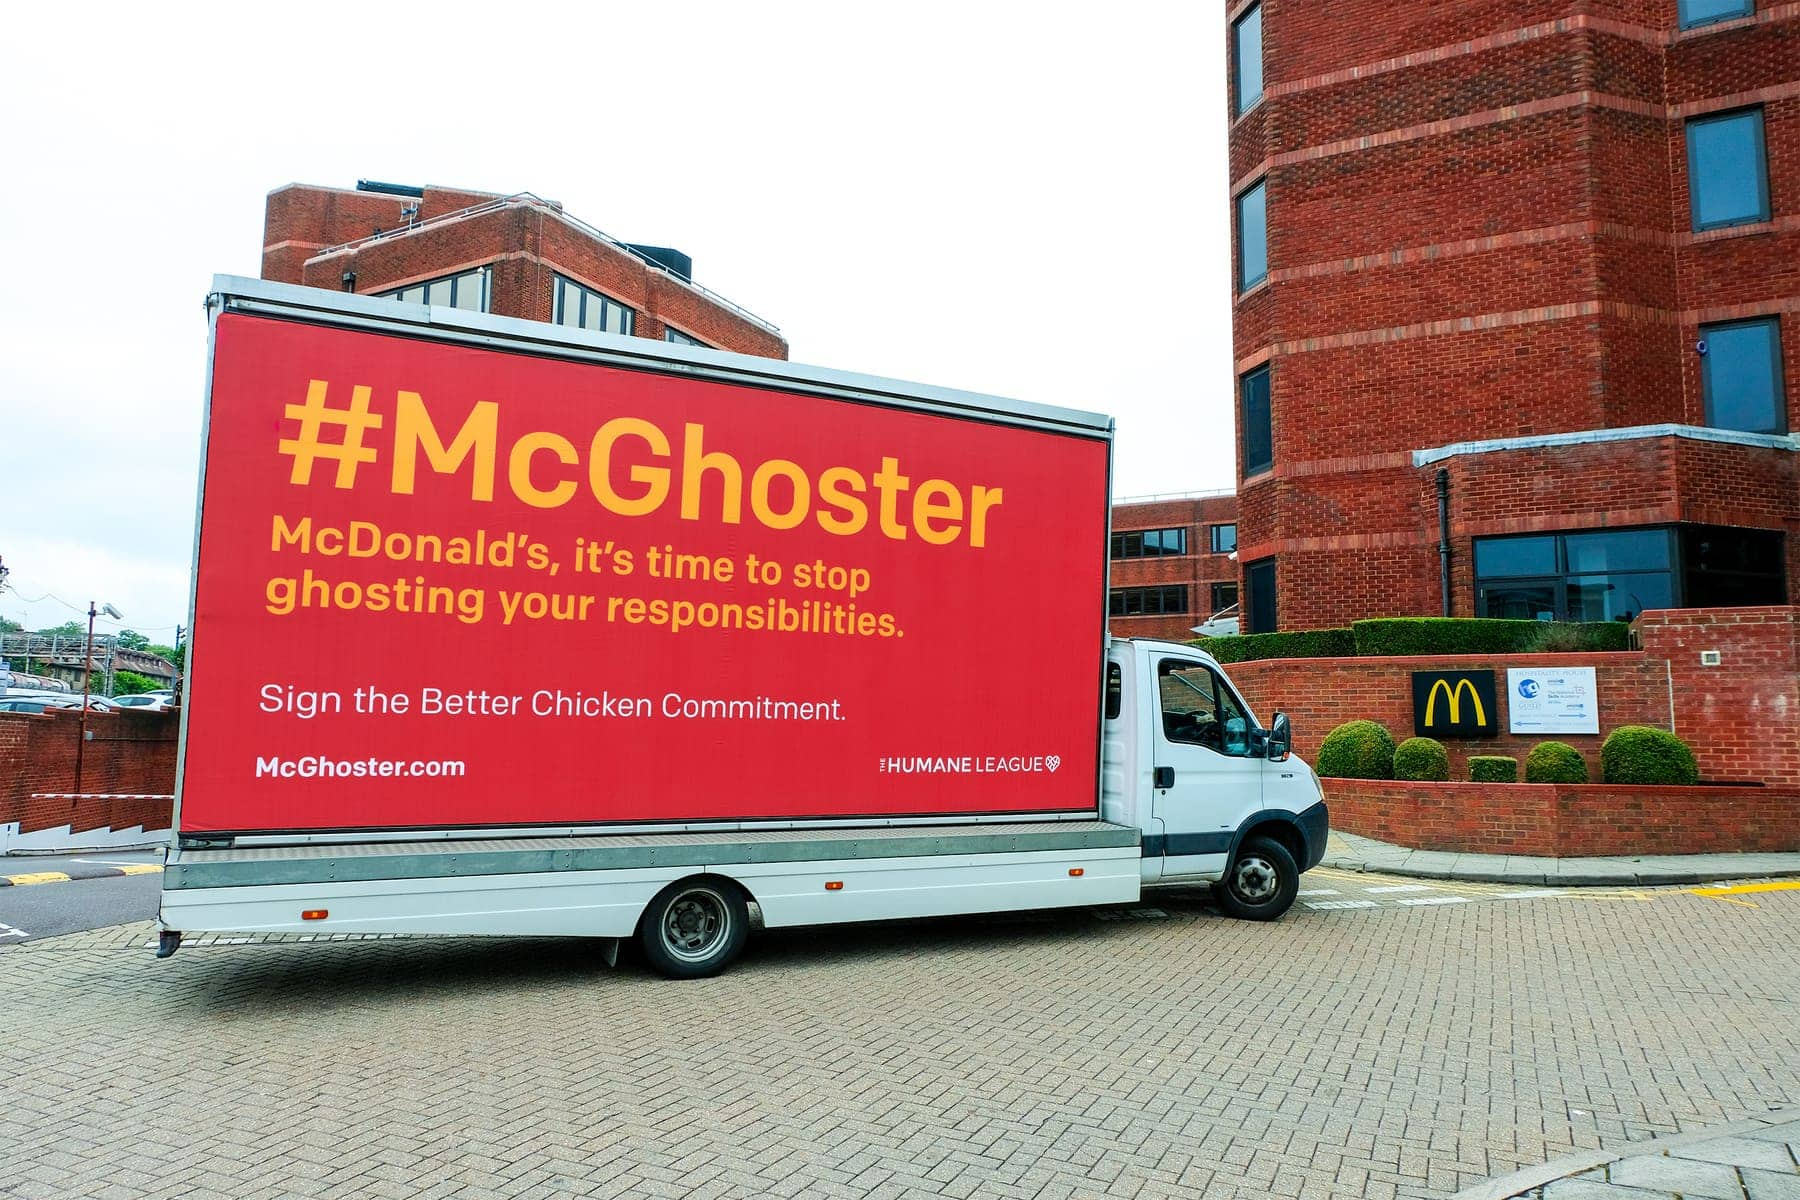 campaign van for #McGhoster